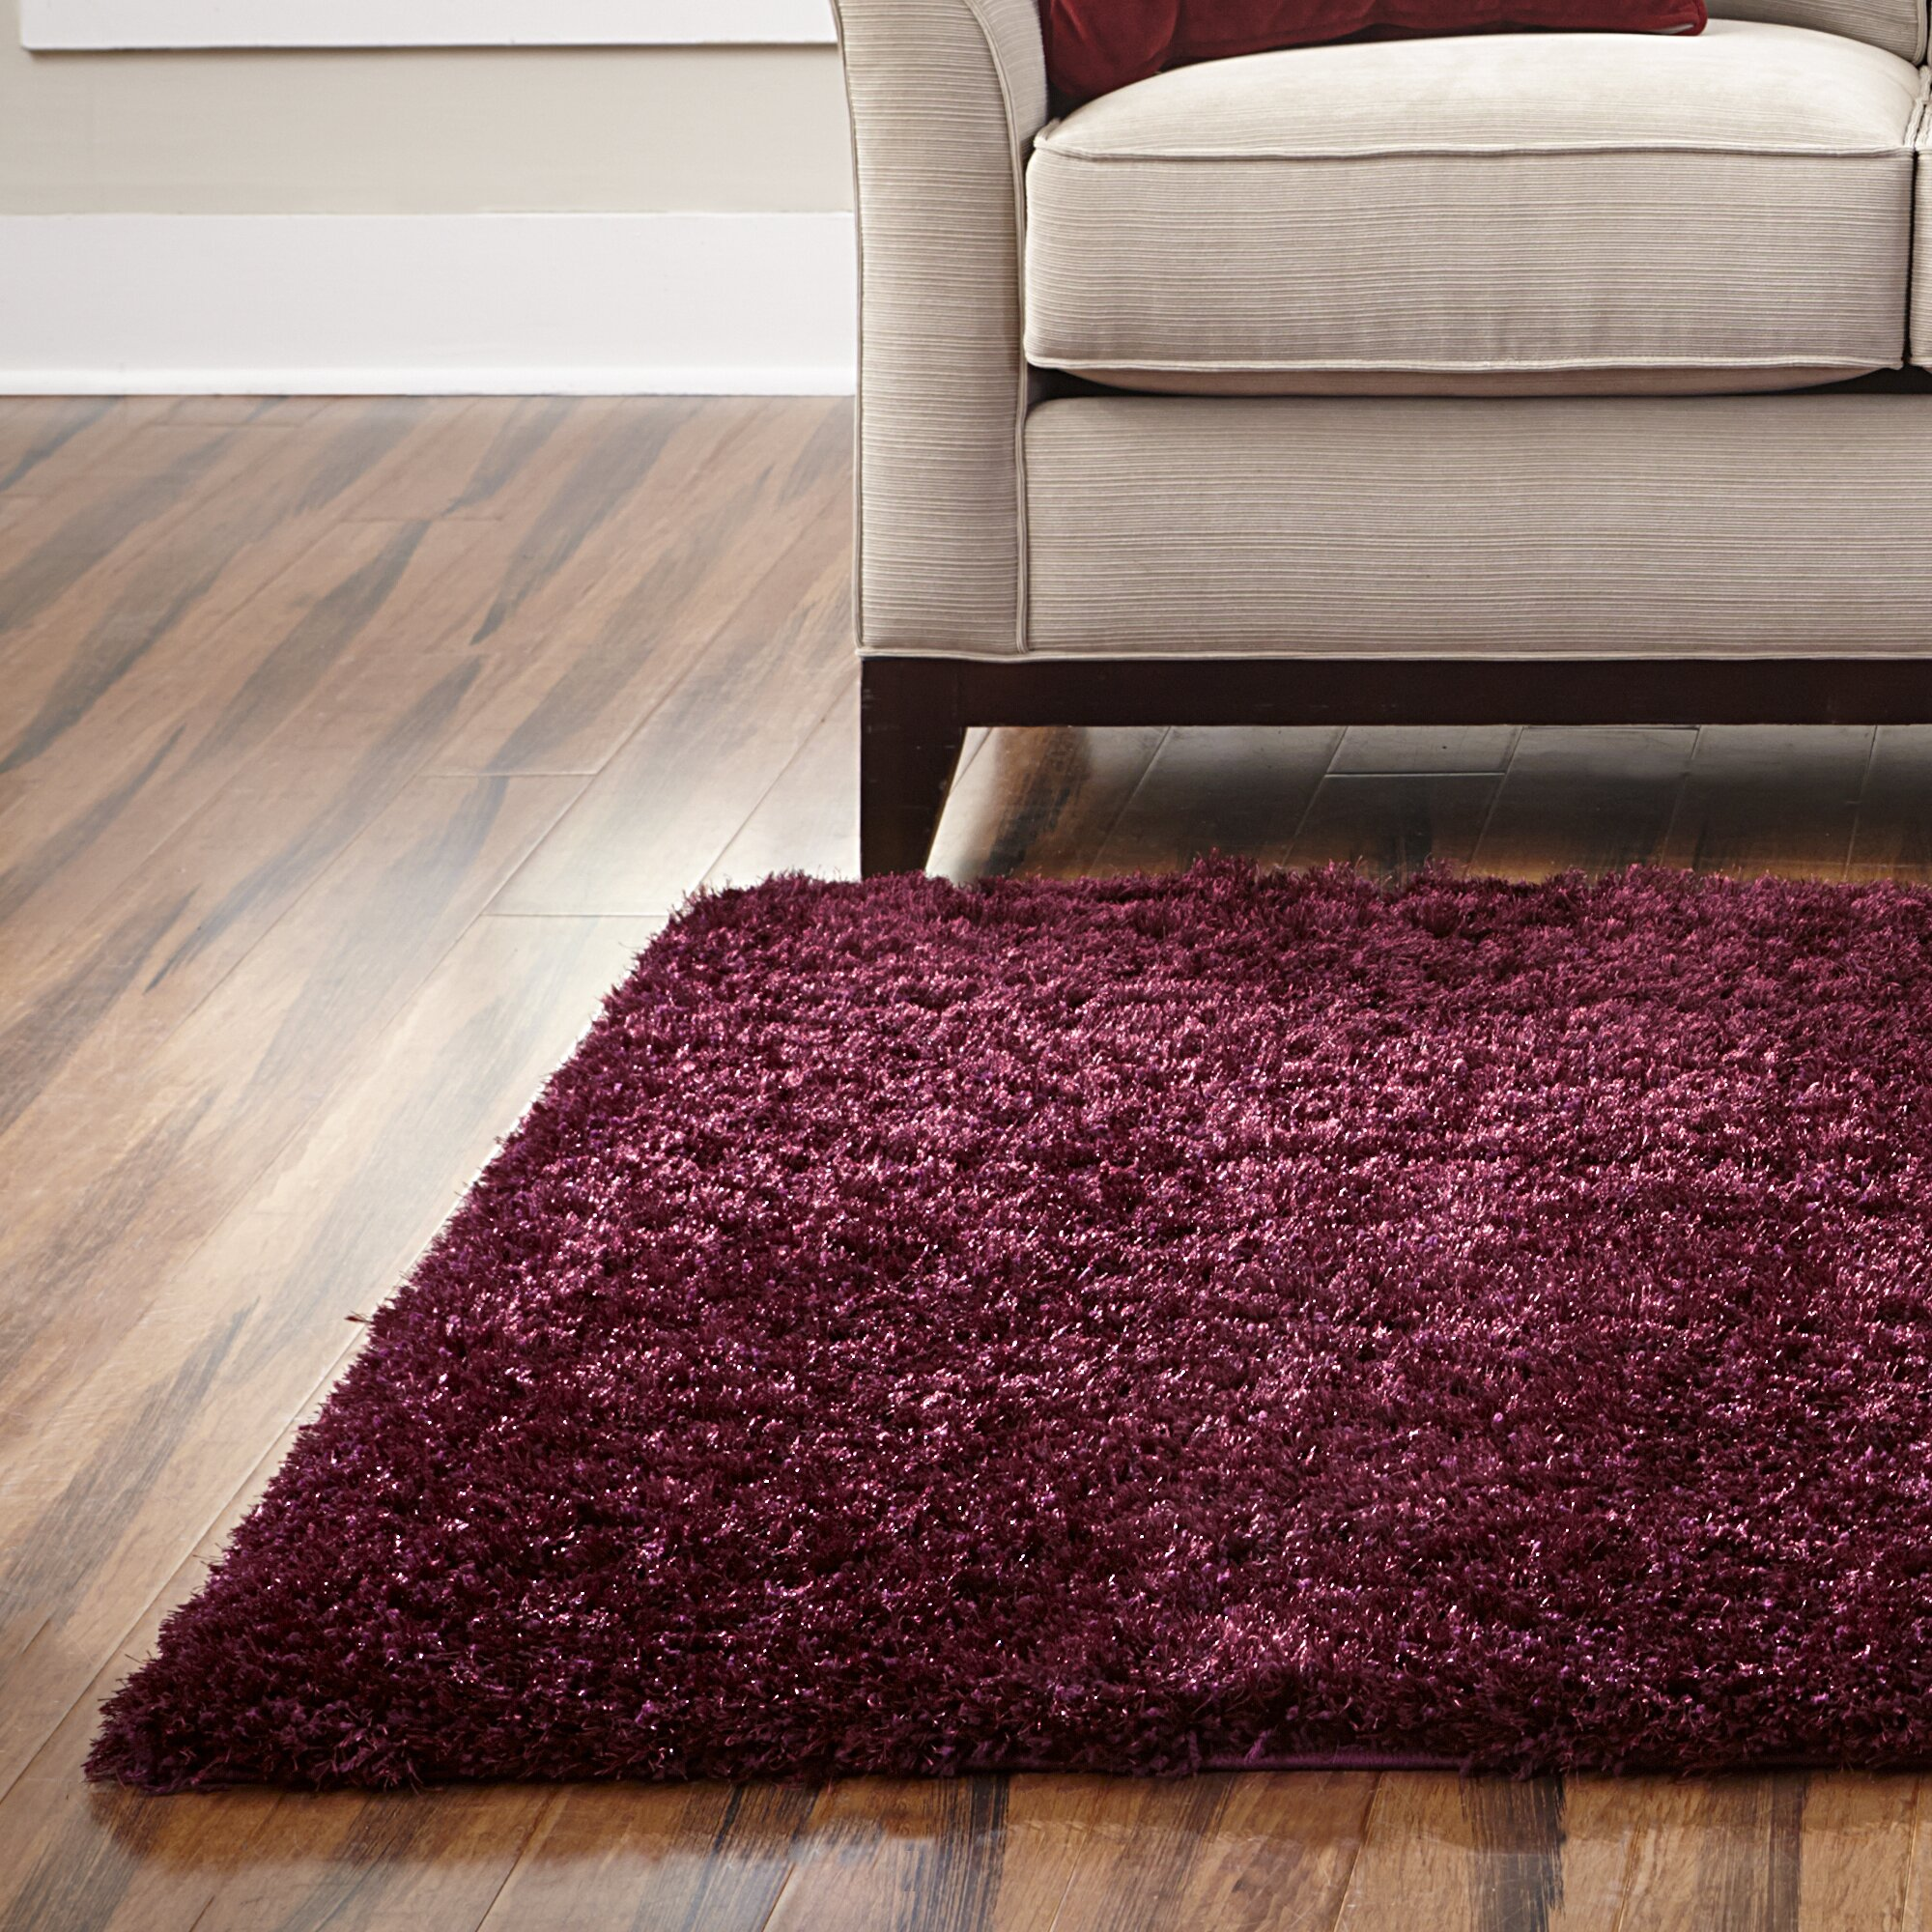 Welspun Spaces Homebeyond 169 Eyelash Shag Maroon Area Rug